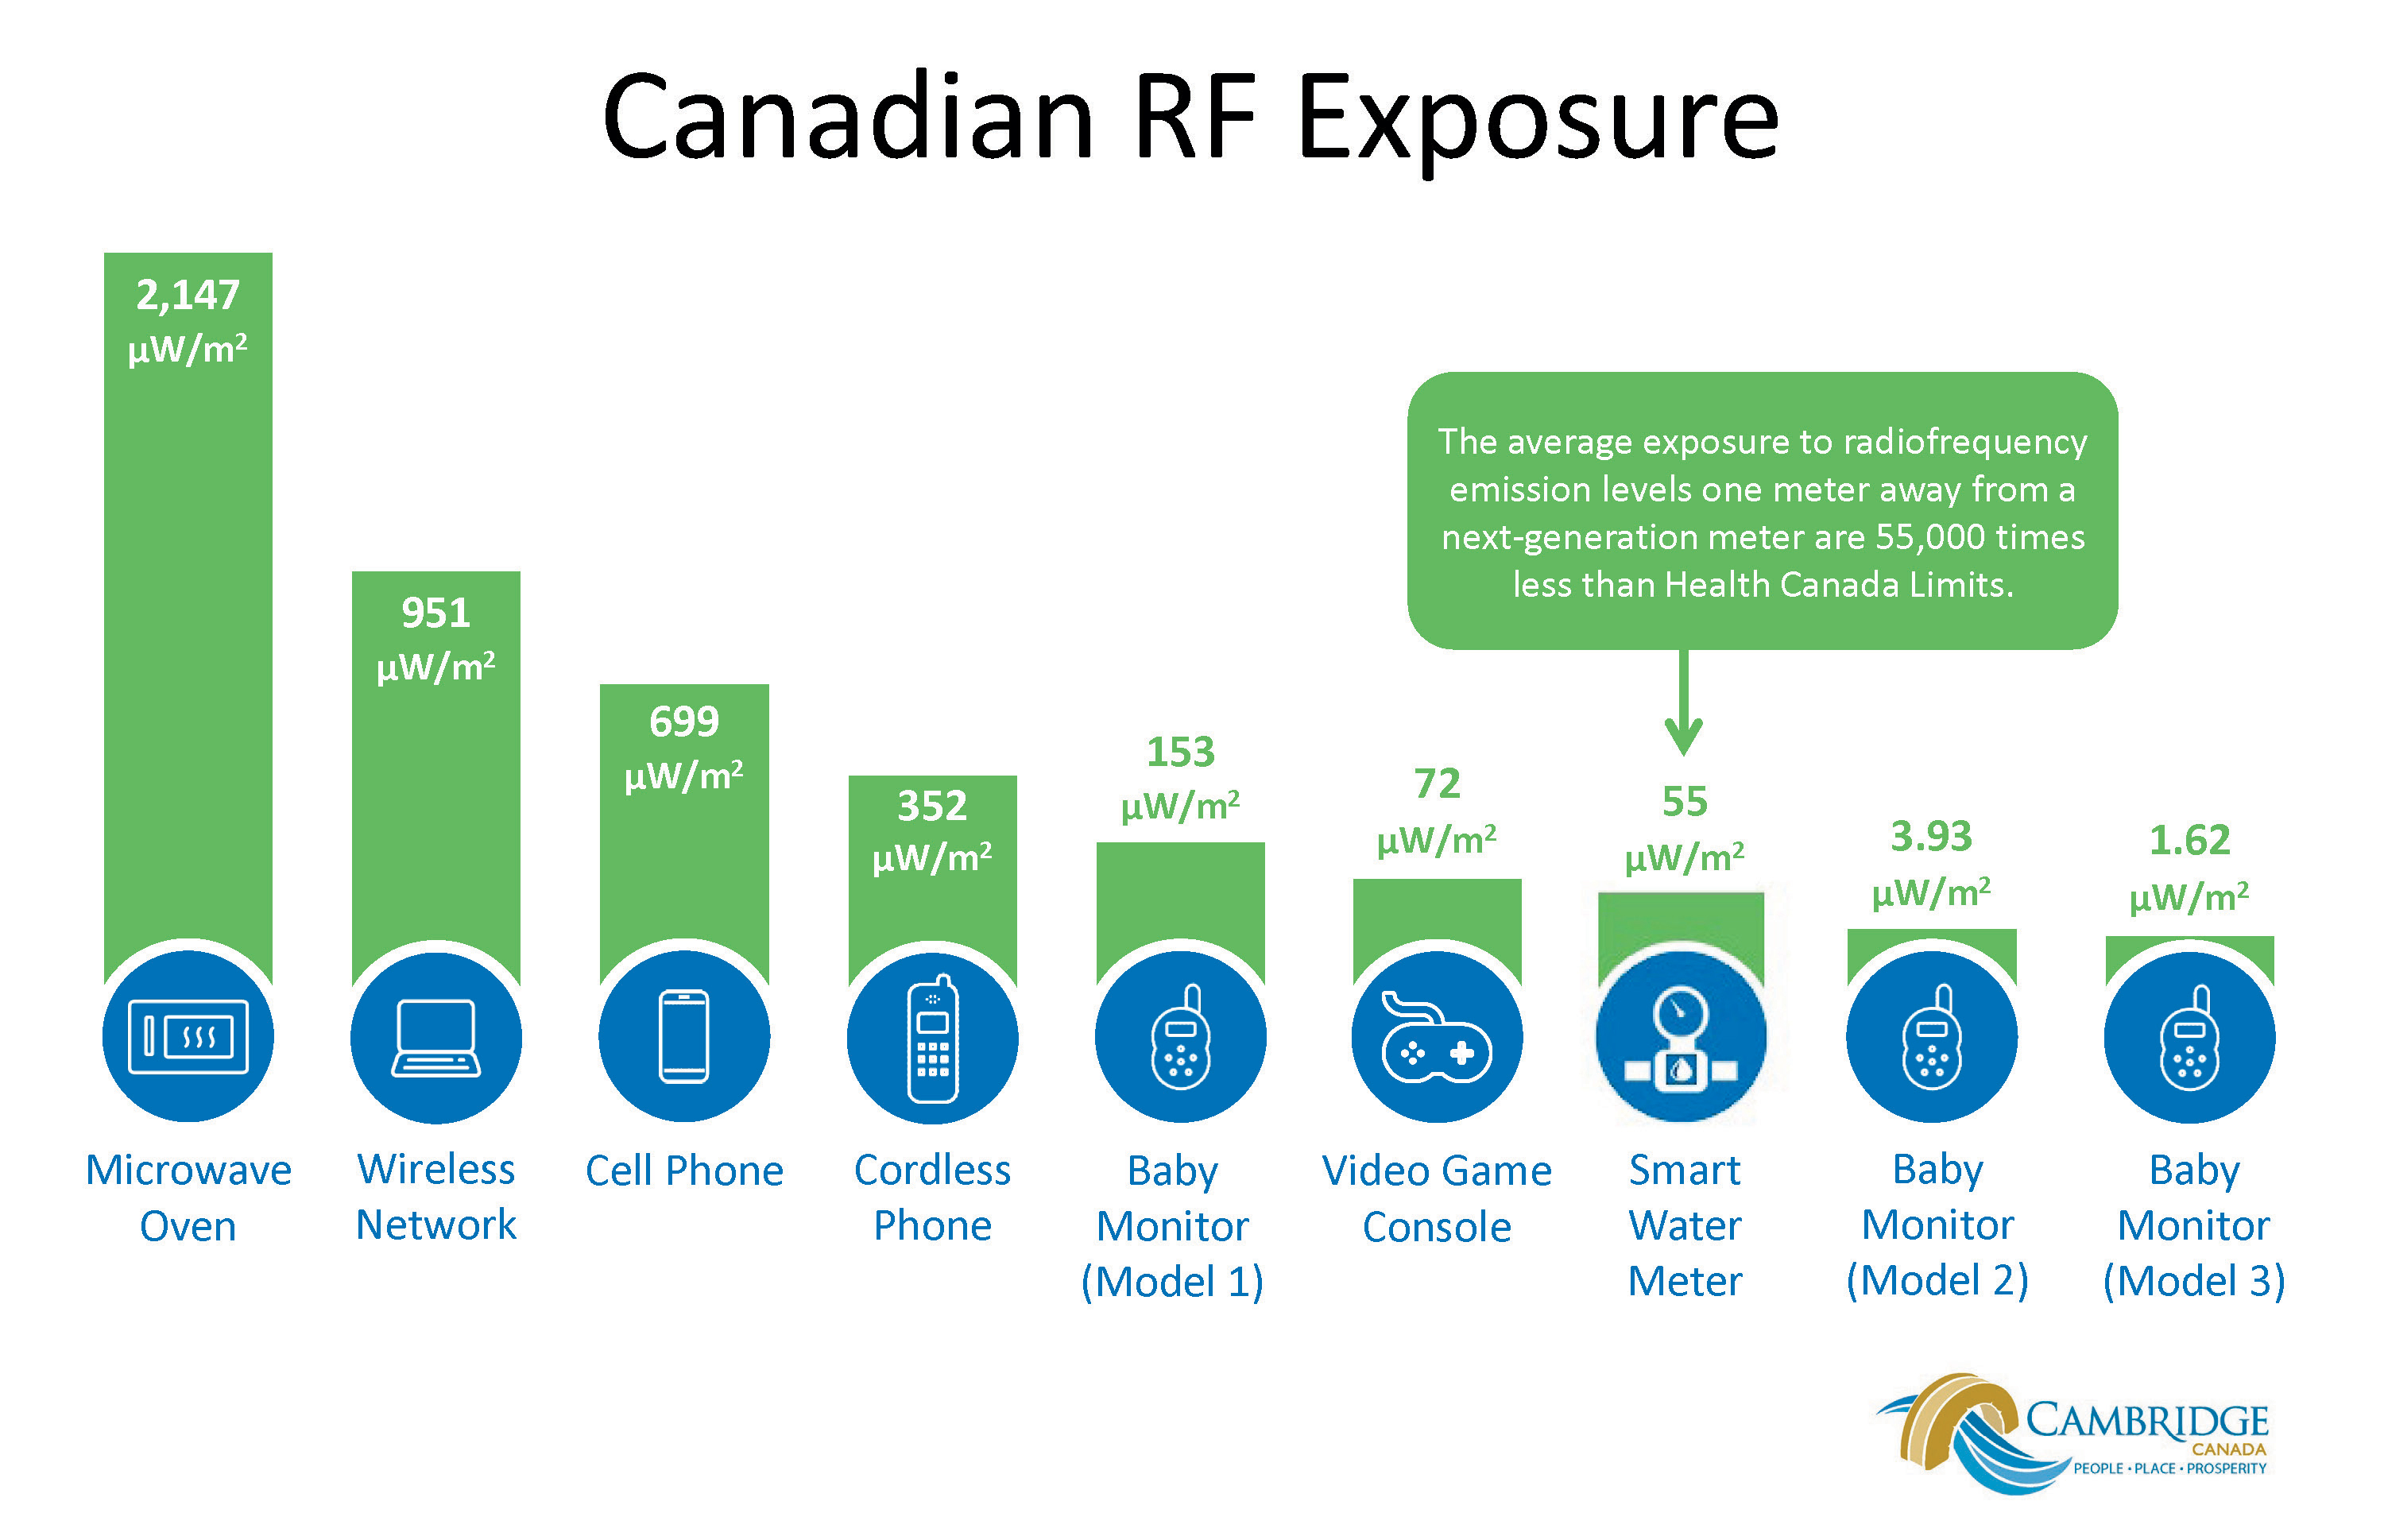 Canadian Radio Frequency Exposure graph